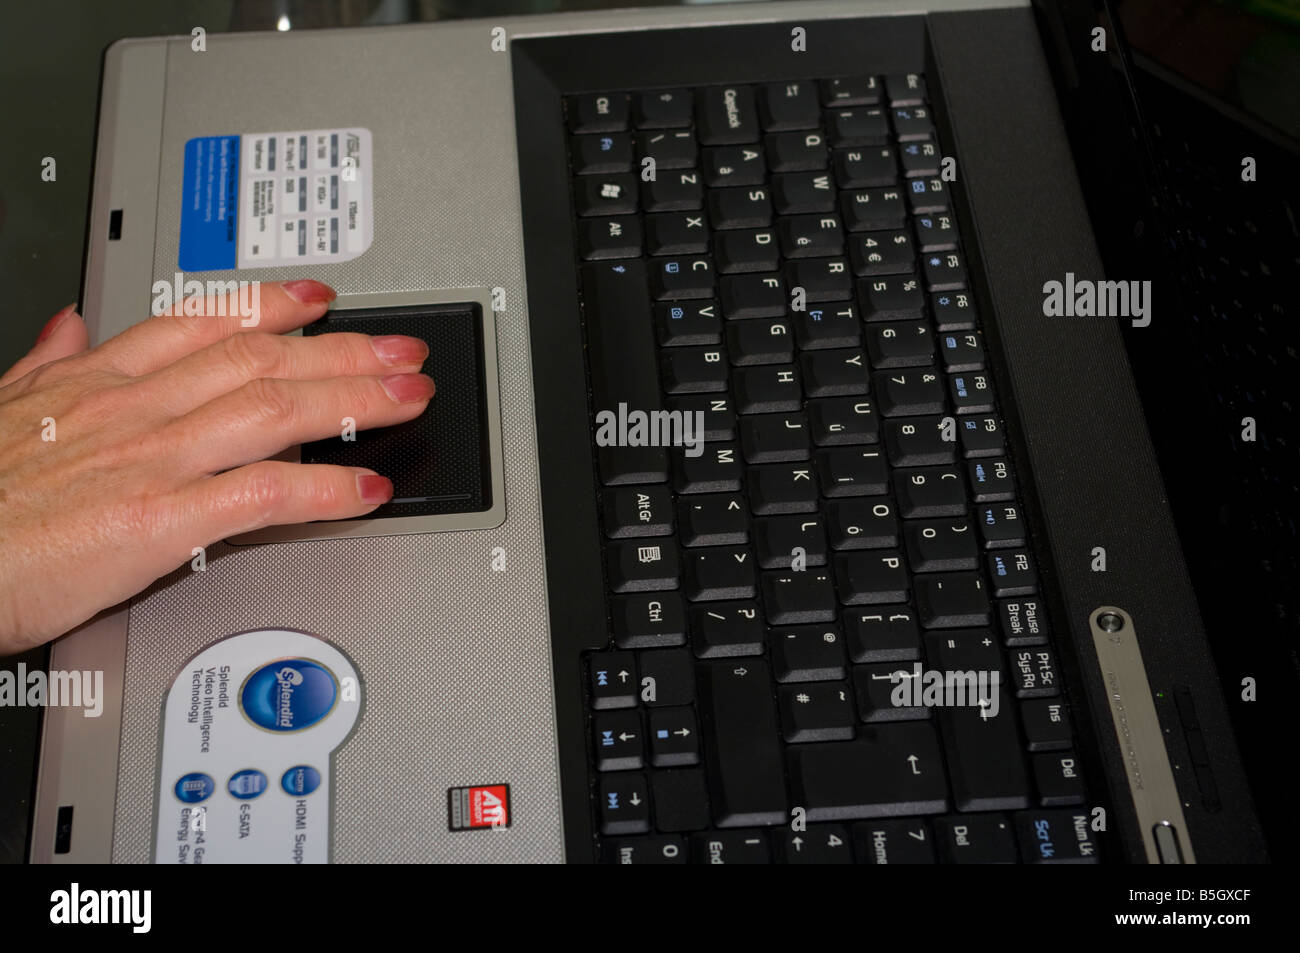 Womans Person fingers Hand Using The Touchpad of a Laptop Computer - Stock Image